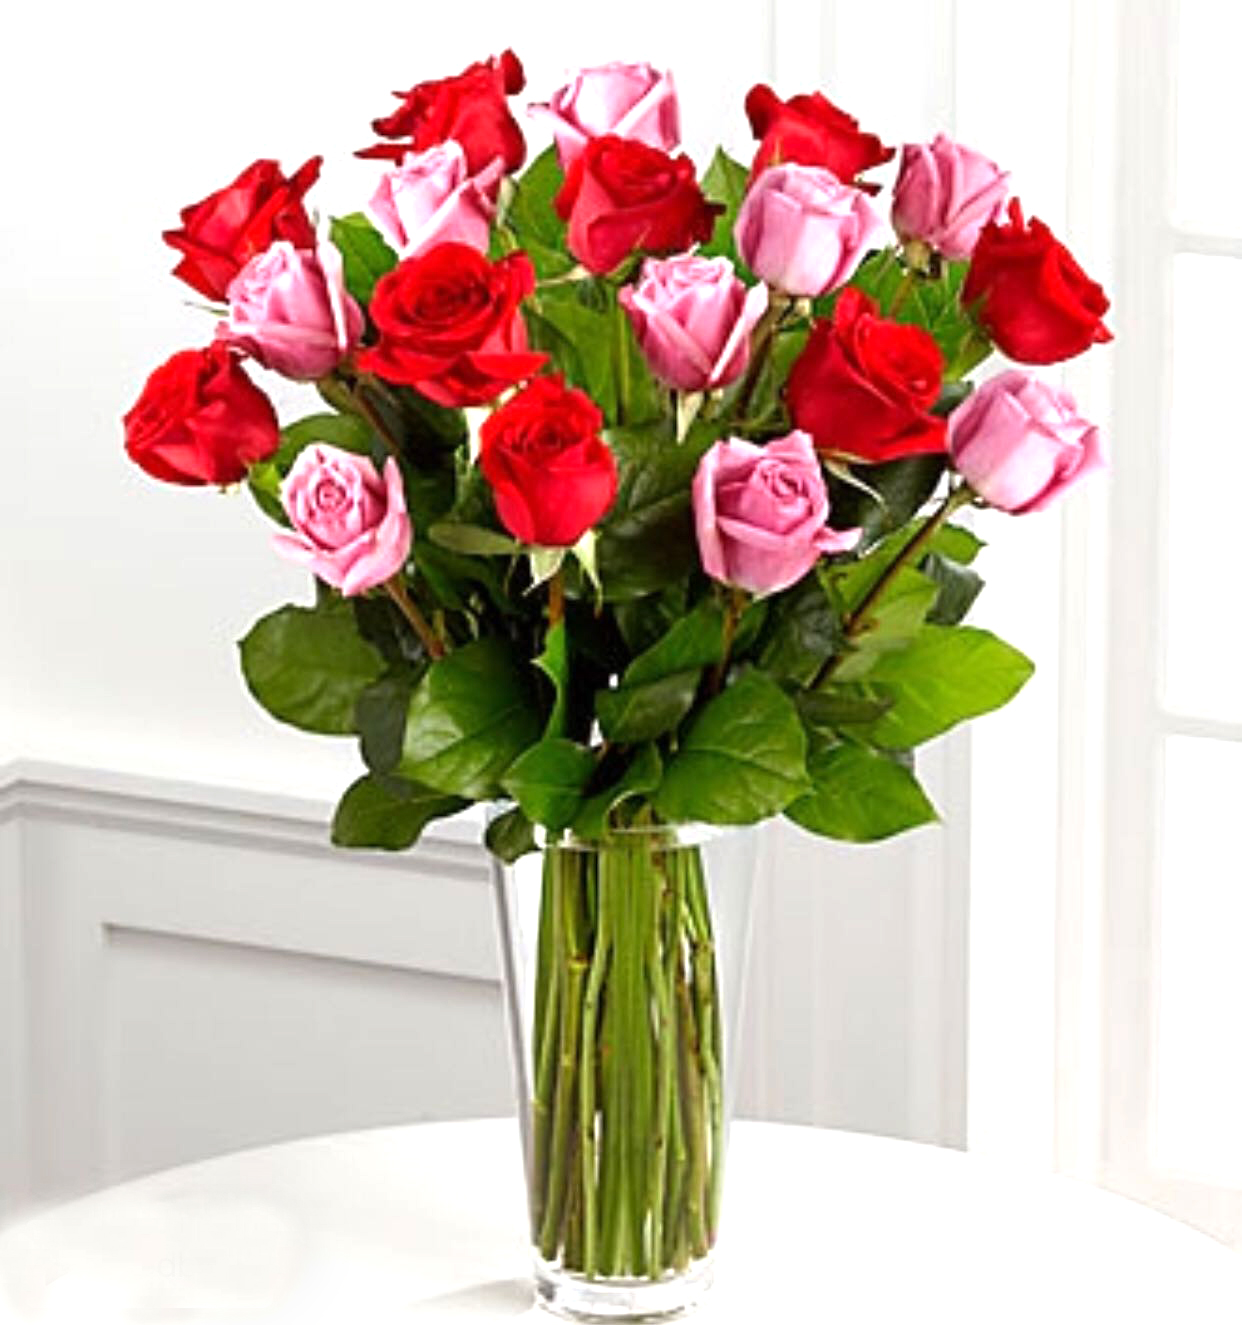 2 dz pink and red rose in a vase sunlight flower shop 2 dz pink and red rose in a vase floridaeventfo Choice Image